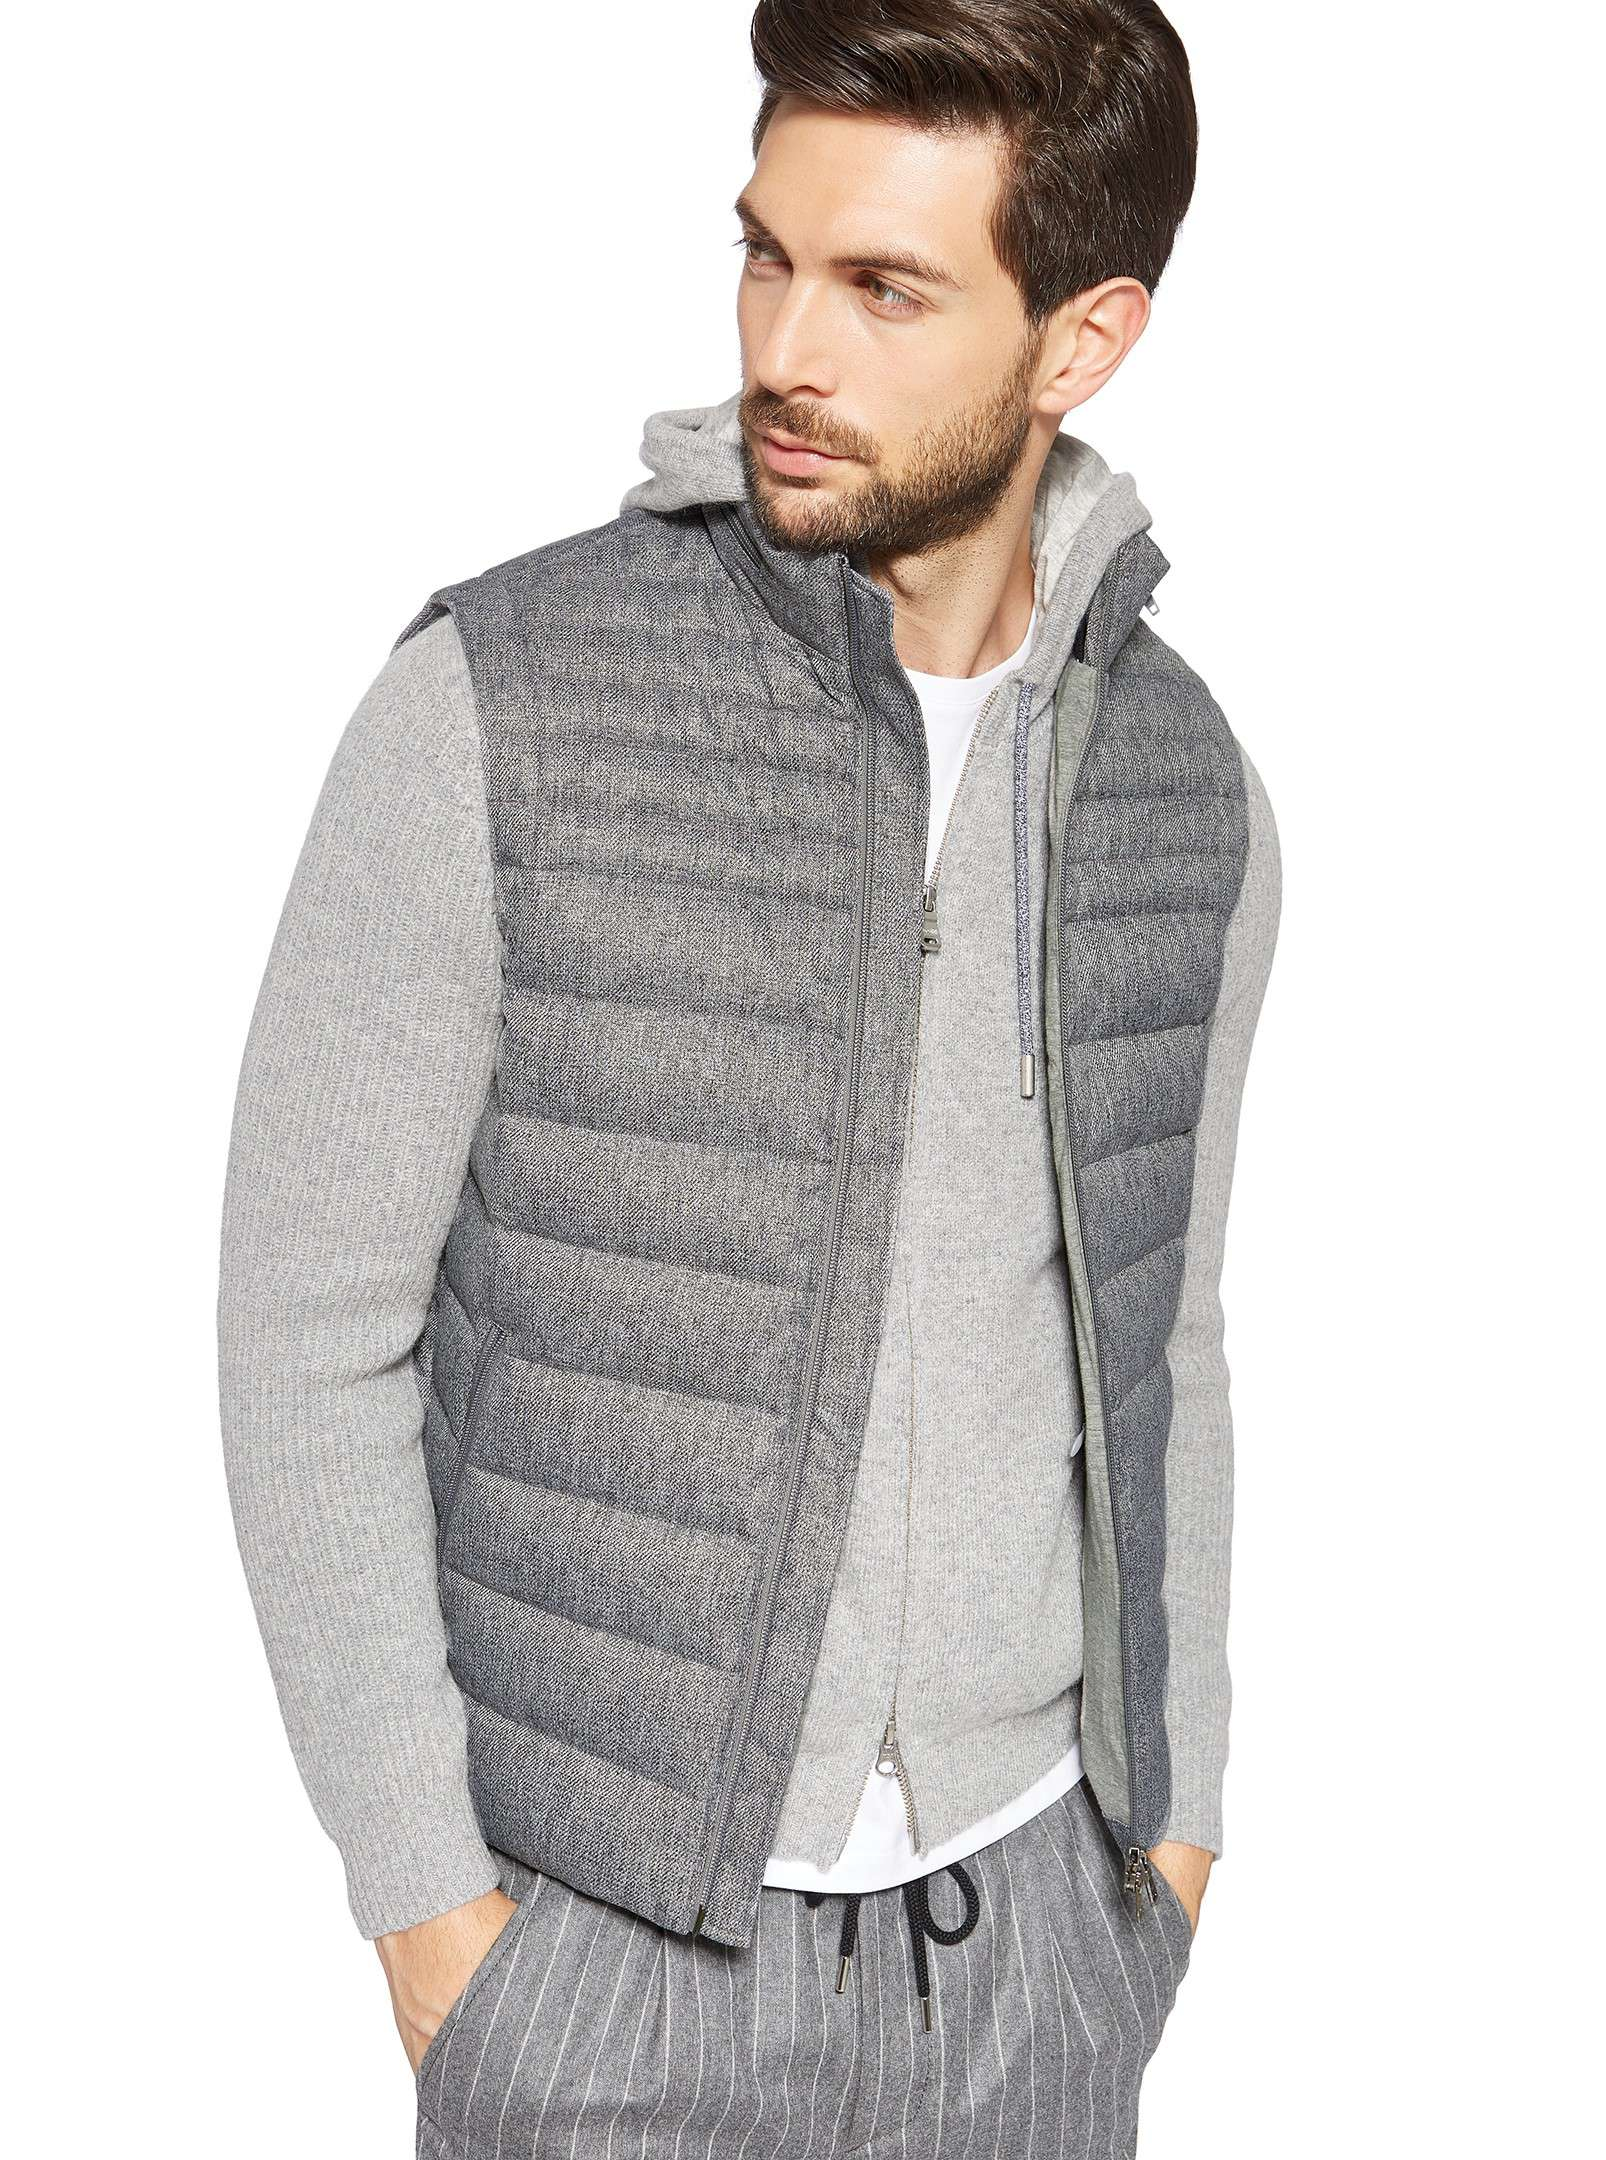 Grey quilted waistcoat